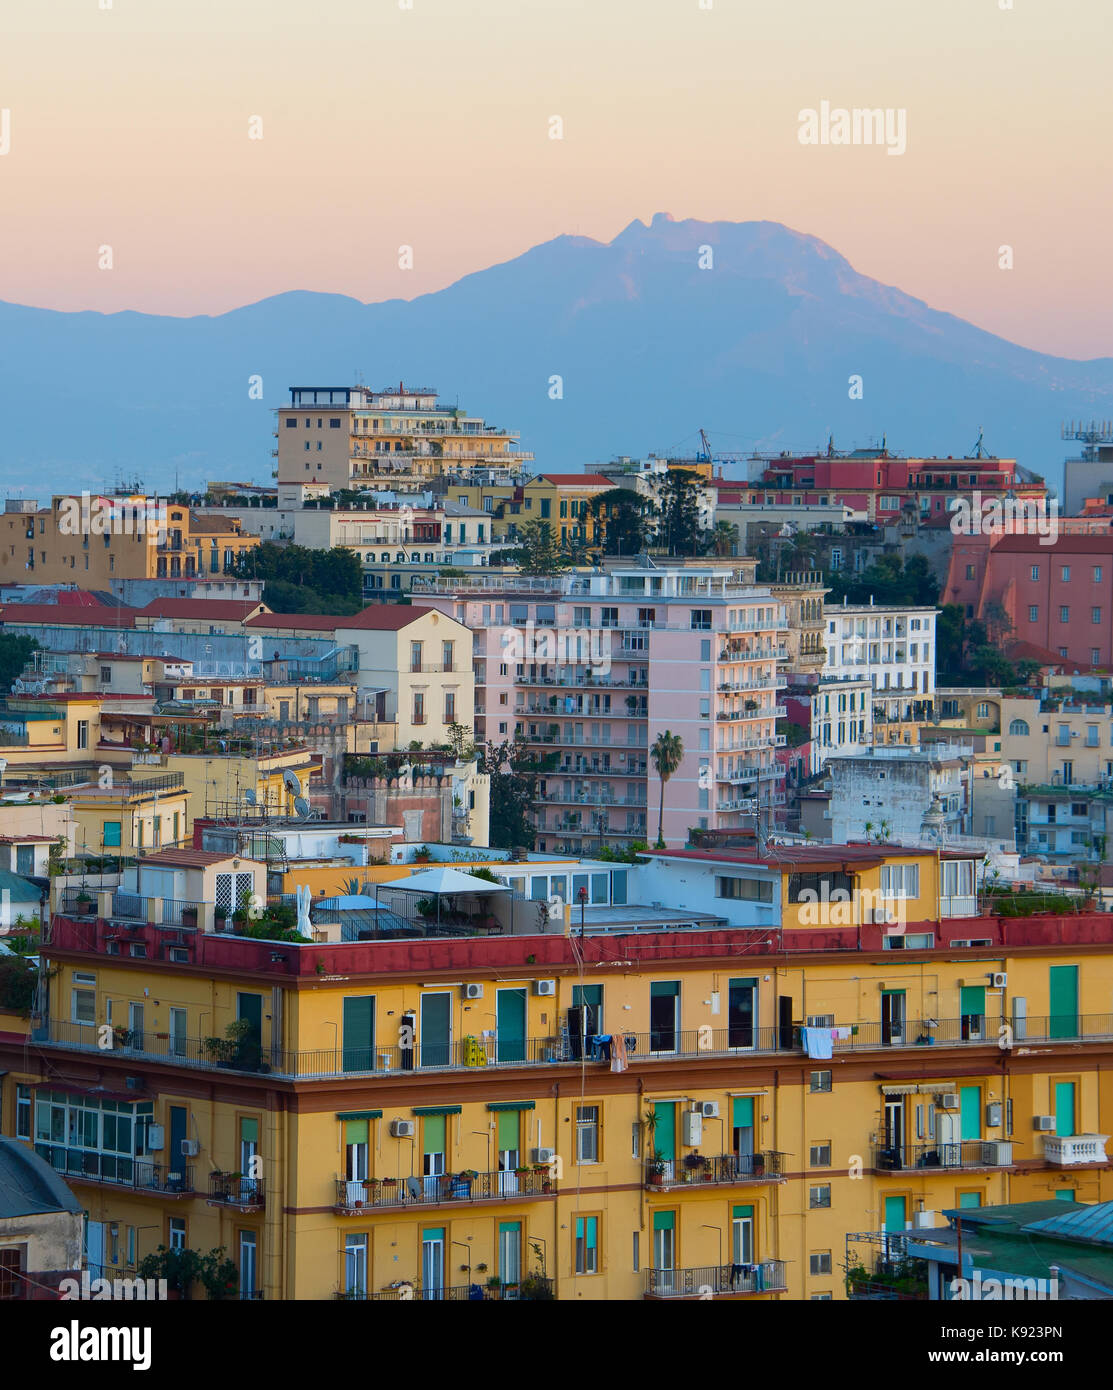 View of beautiful Old Town of Naples at twilight. Italy - Stock Image